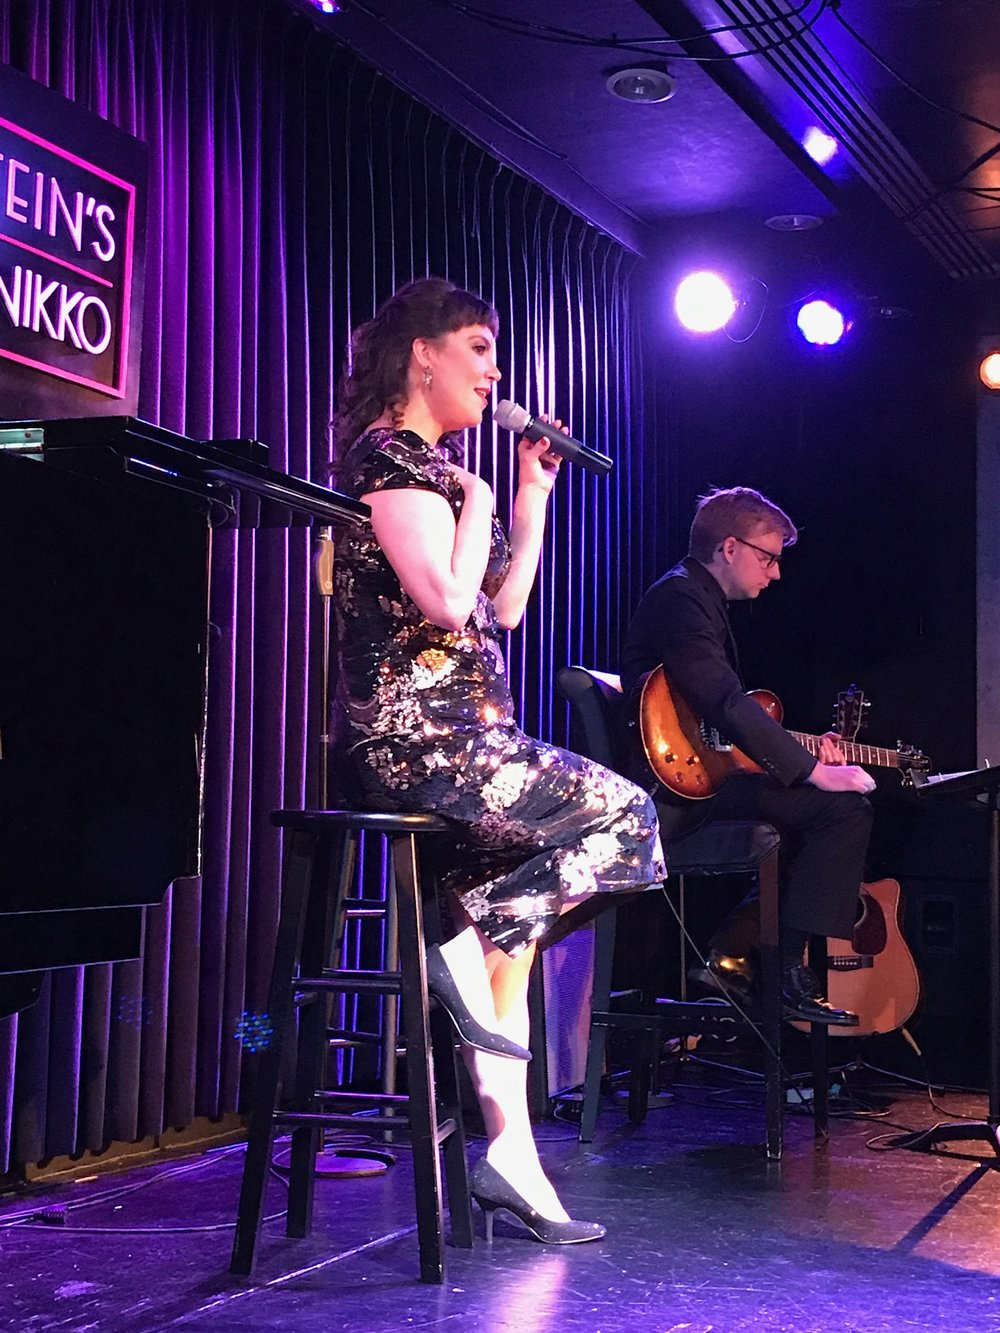 Ariela Morgenstern at Feinstein's